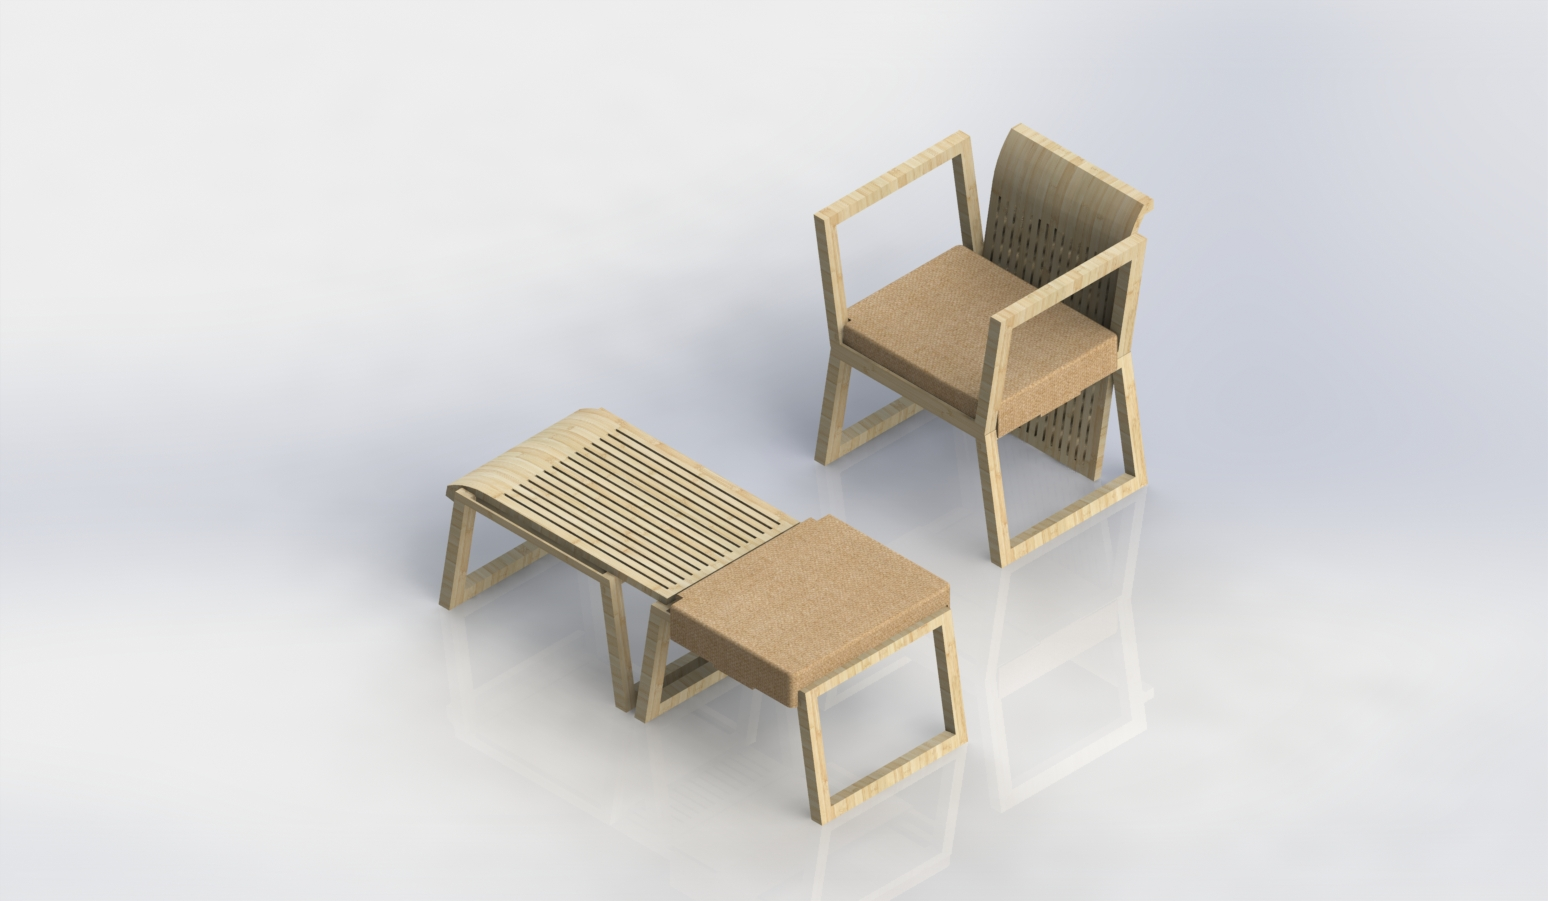 Palet Wood Modular Chair Bed Solidworks Models 3d Perspectives